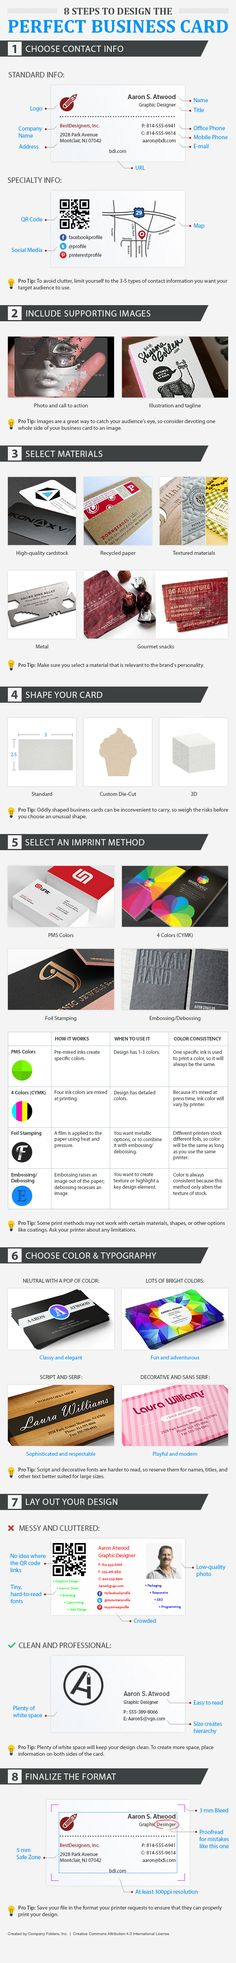 Business cards are one of the most common print designs, so you'd think every designer and their grandmother would know how to make a creative business card. Yet the high…